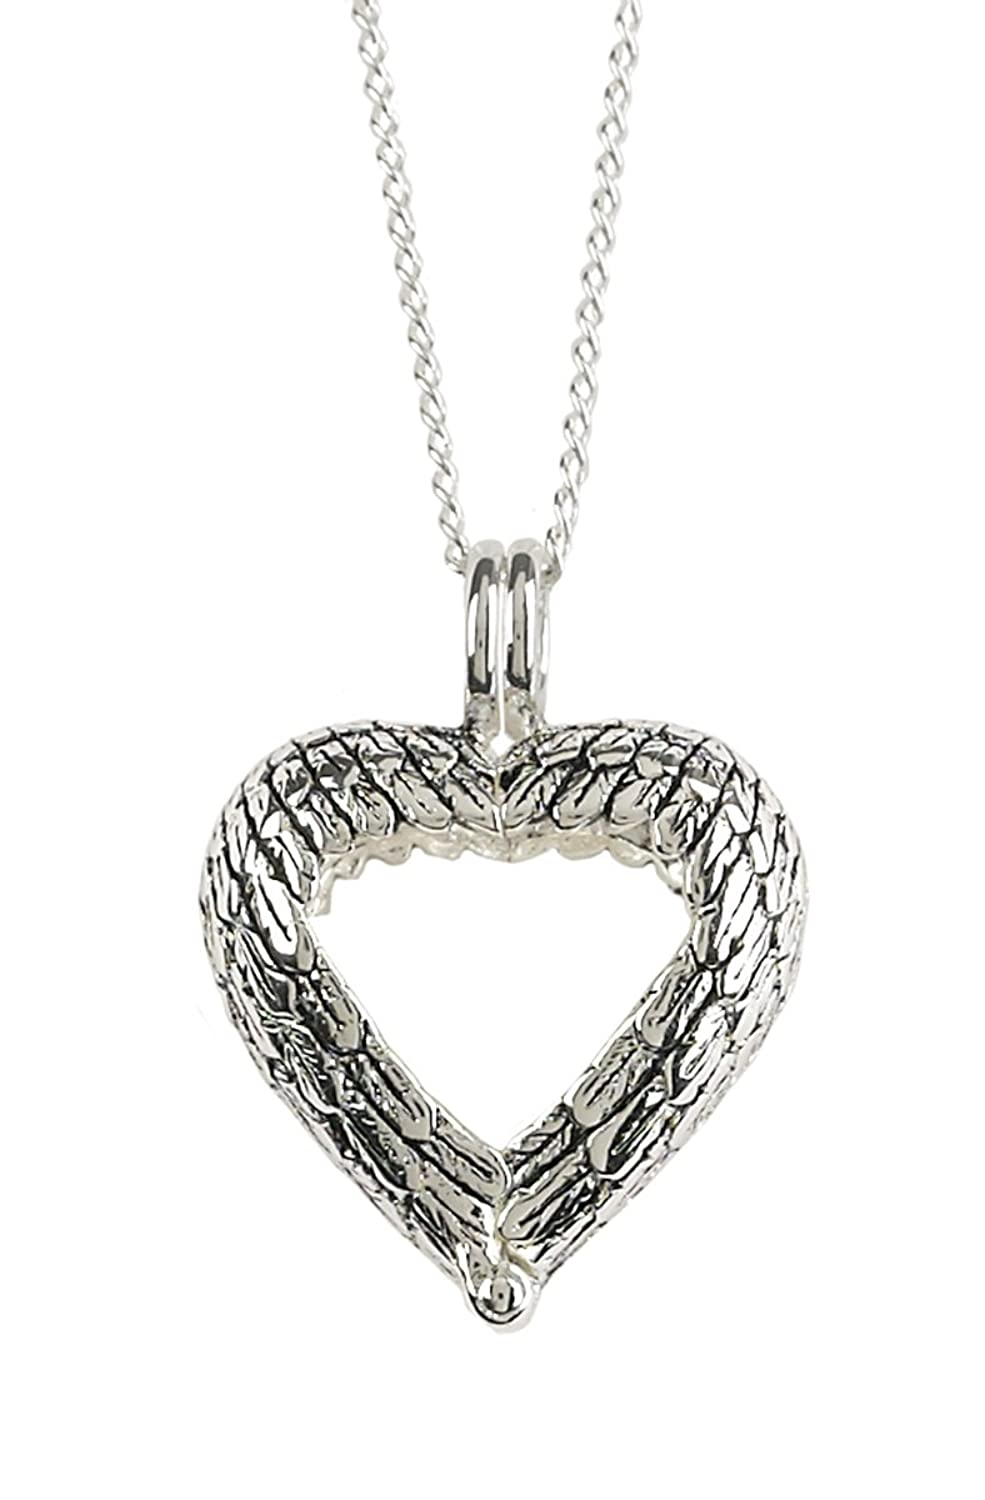 Wonderful Amazon.com: Dicksons Angel Wings Ring Holder Bereavement Memorial Silver  Plated 18 Inch Pendant Necklace: Jewelry